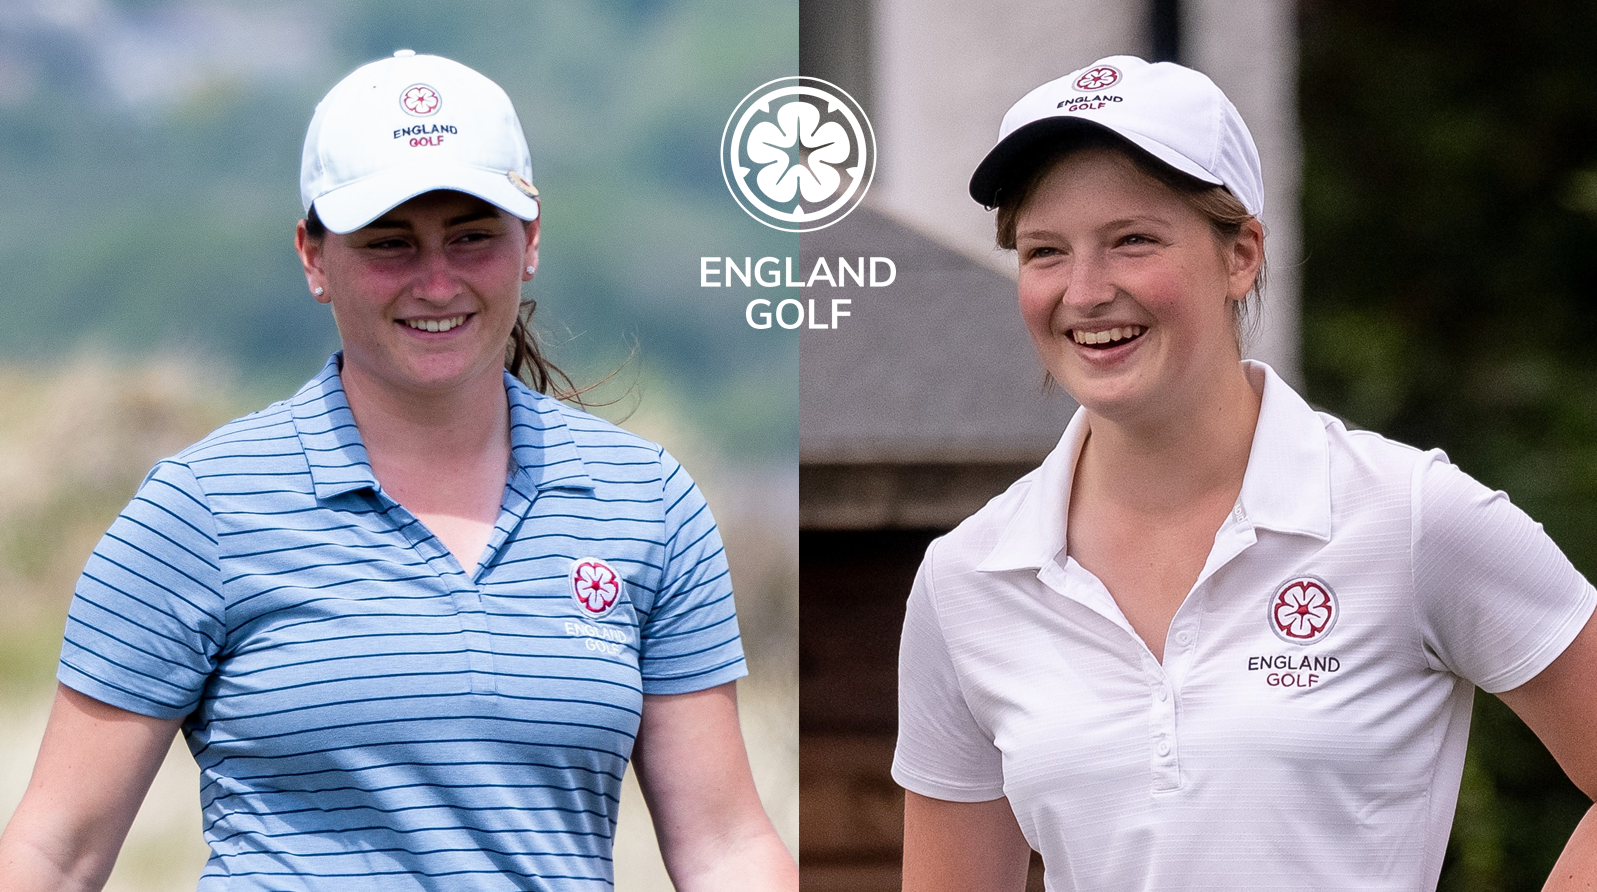 'A year of opportunity' for England's women and girls